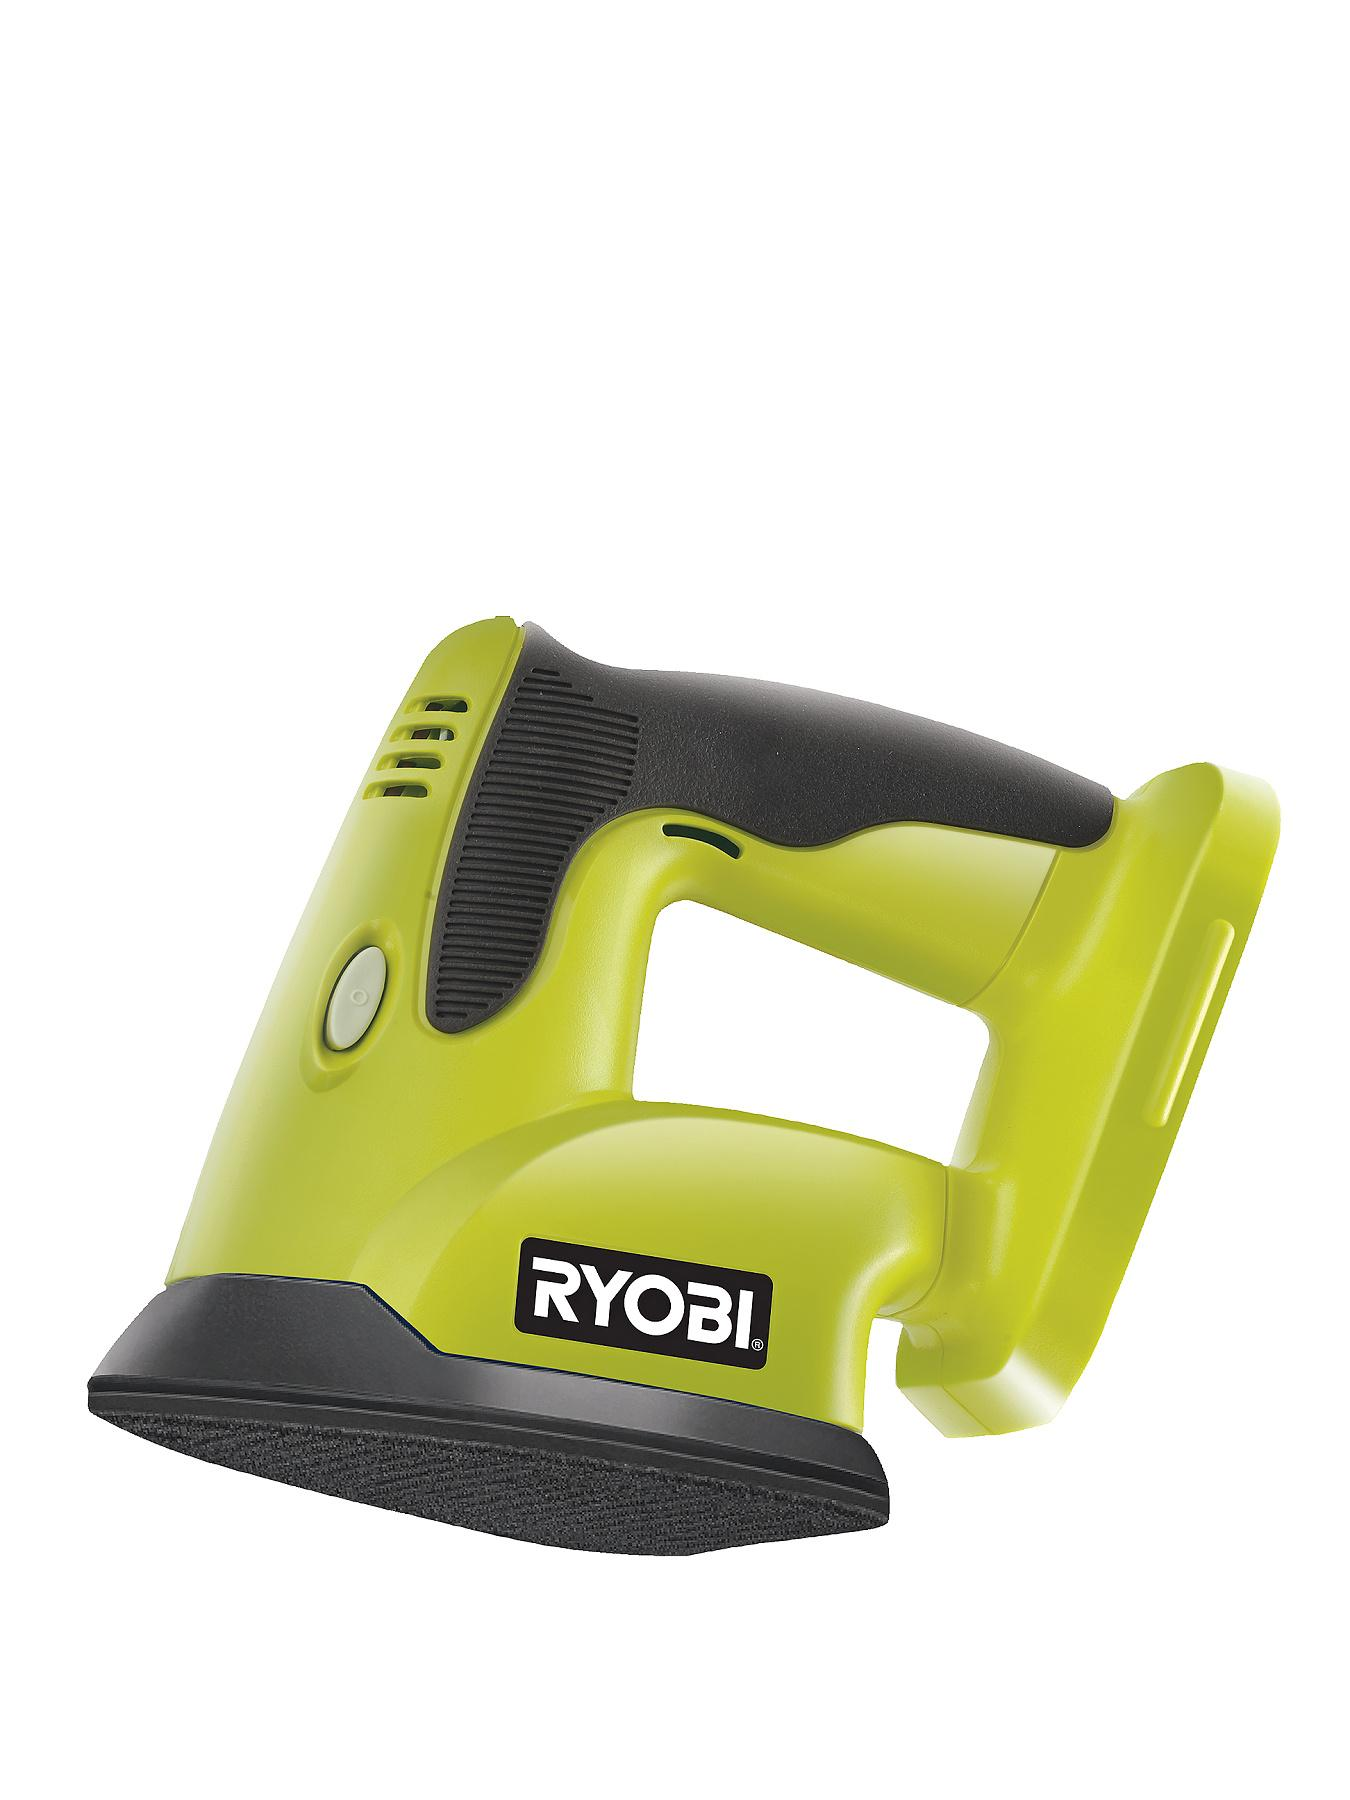 Ryobi ONE+ CCC1801M 18V Corner Sander - without 18V ONE+ battery